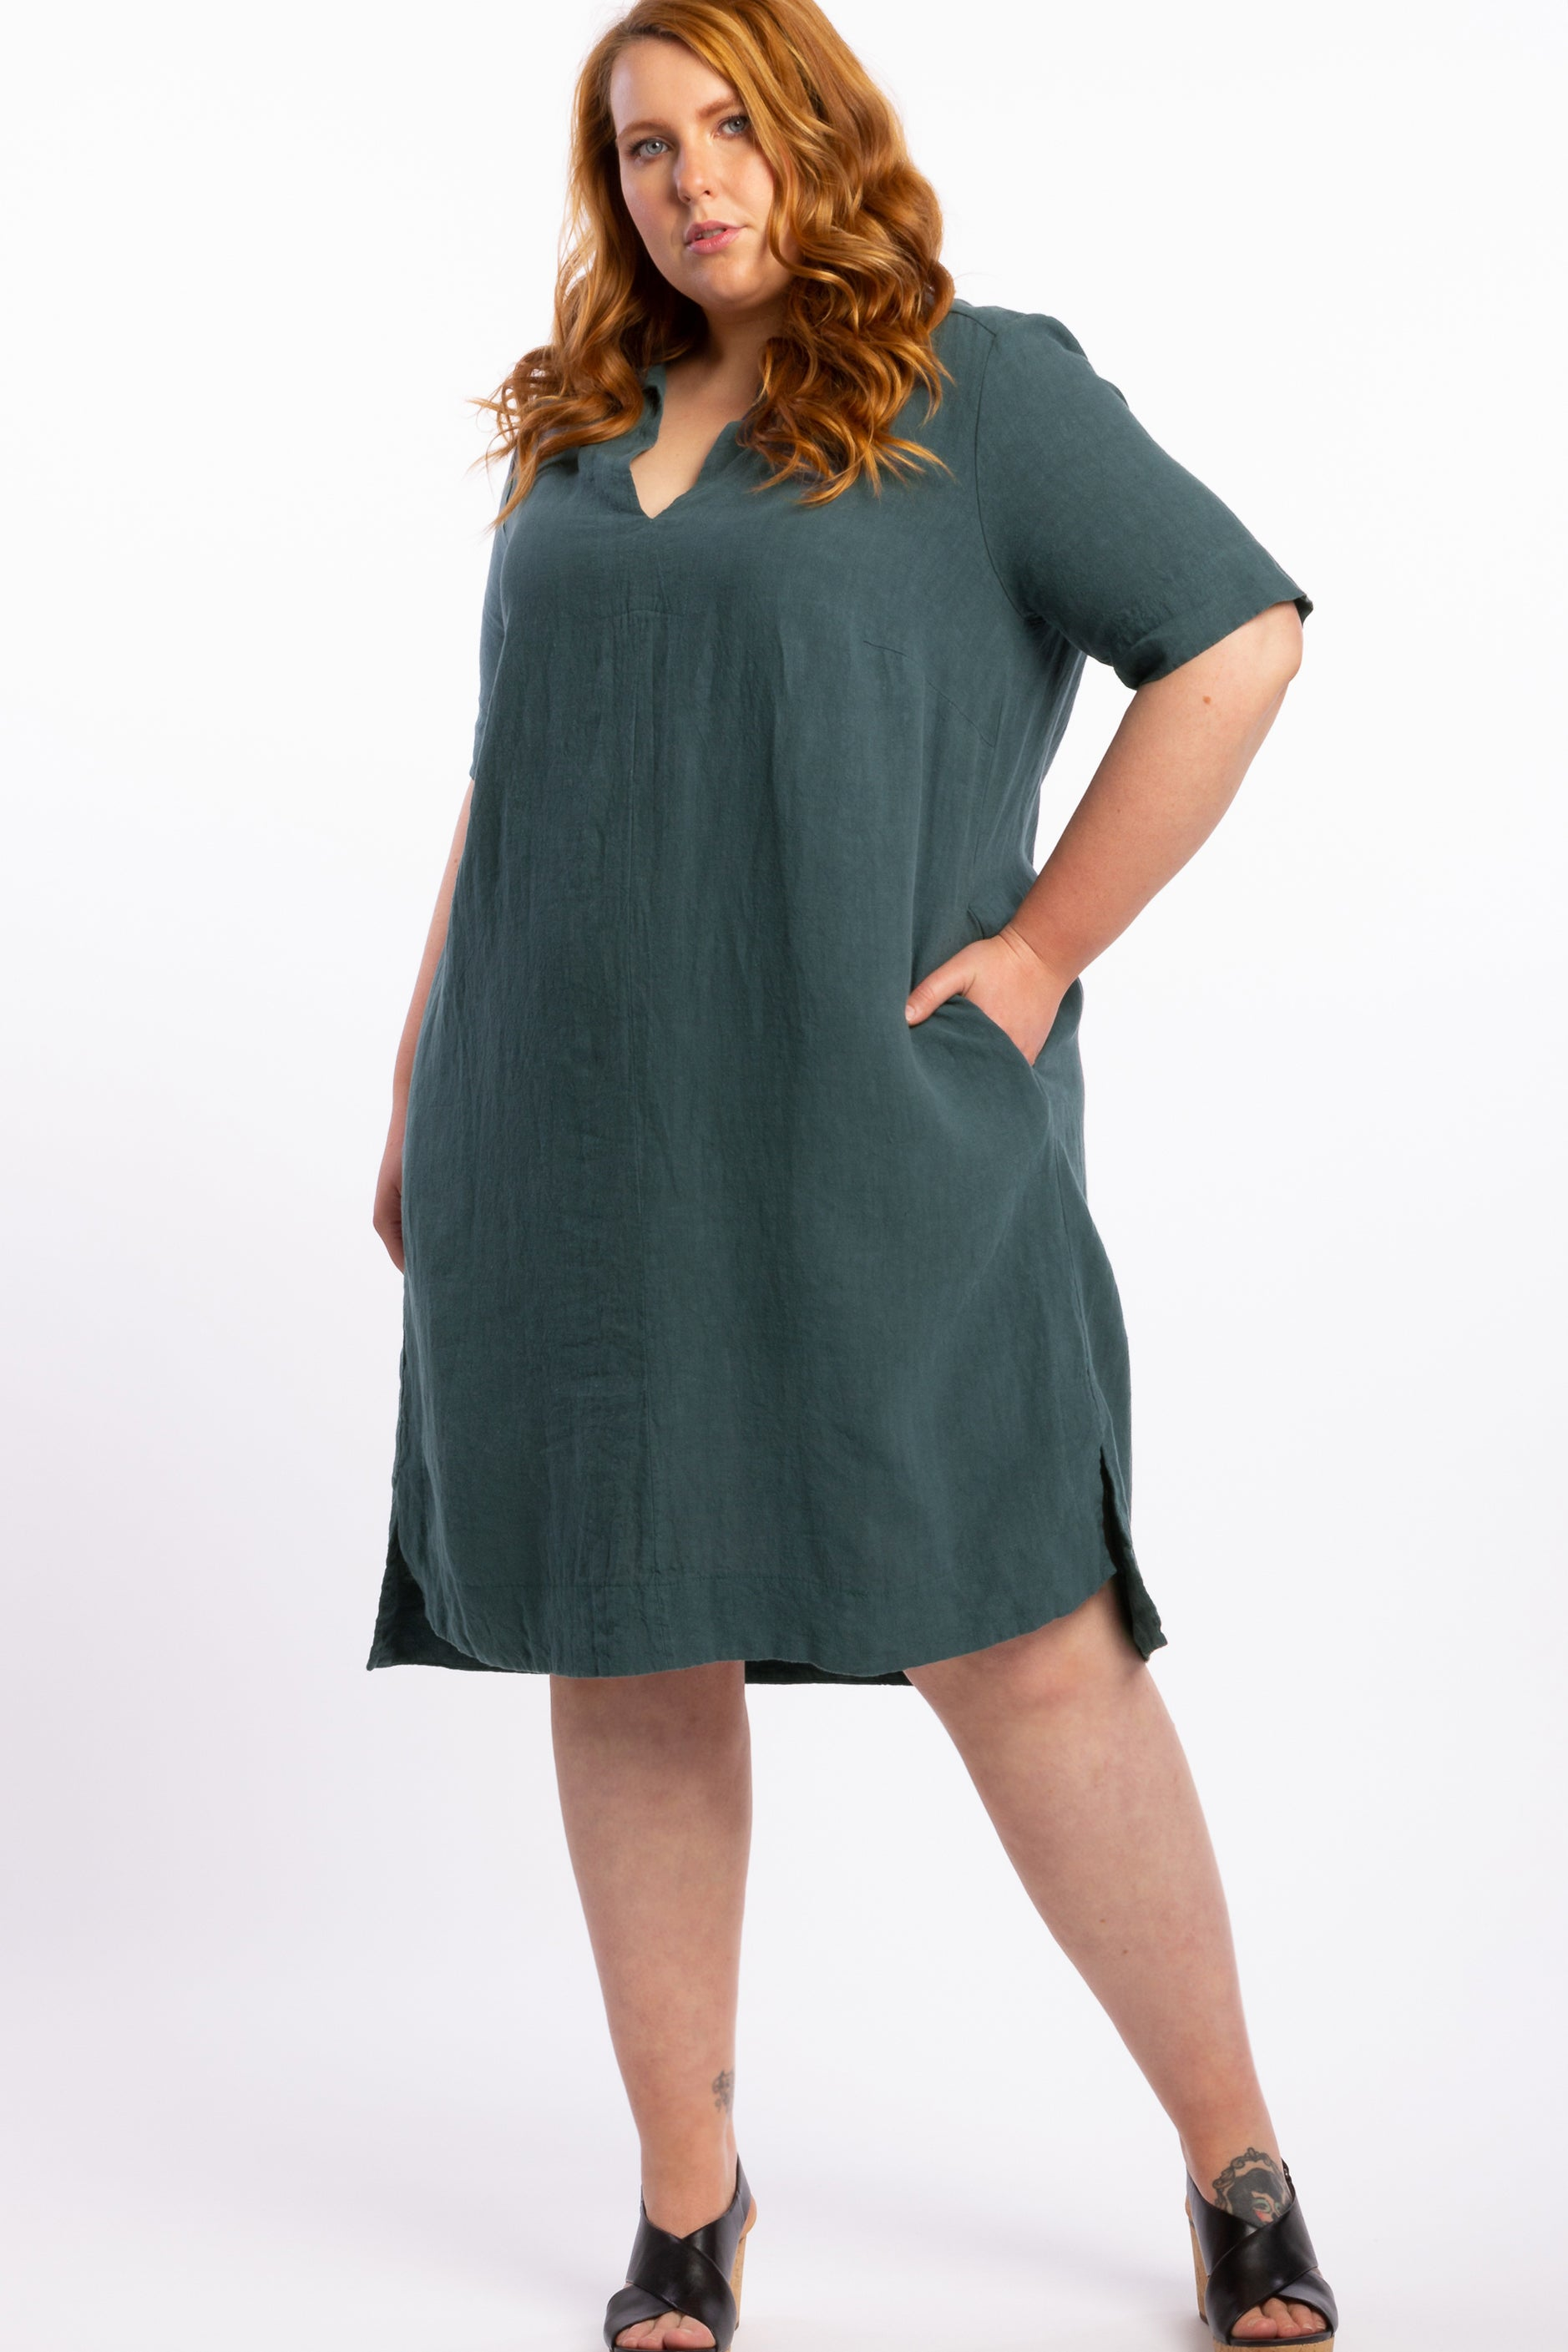 Holiday In The Sun Linen Dress - Steel